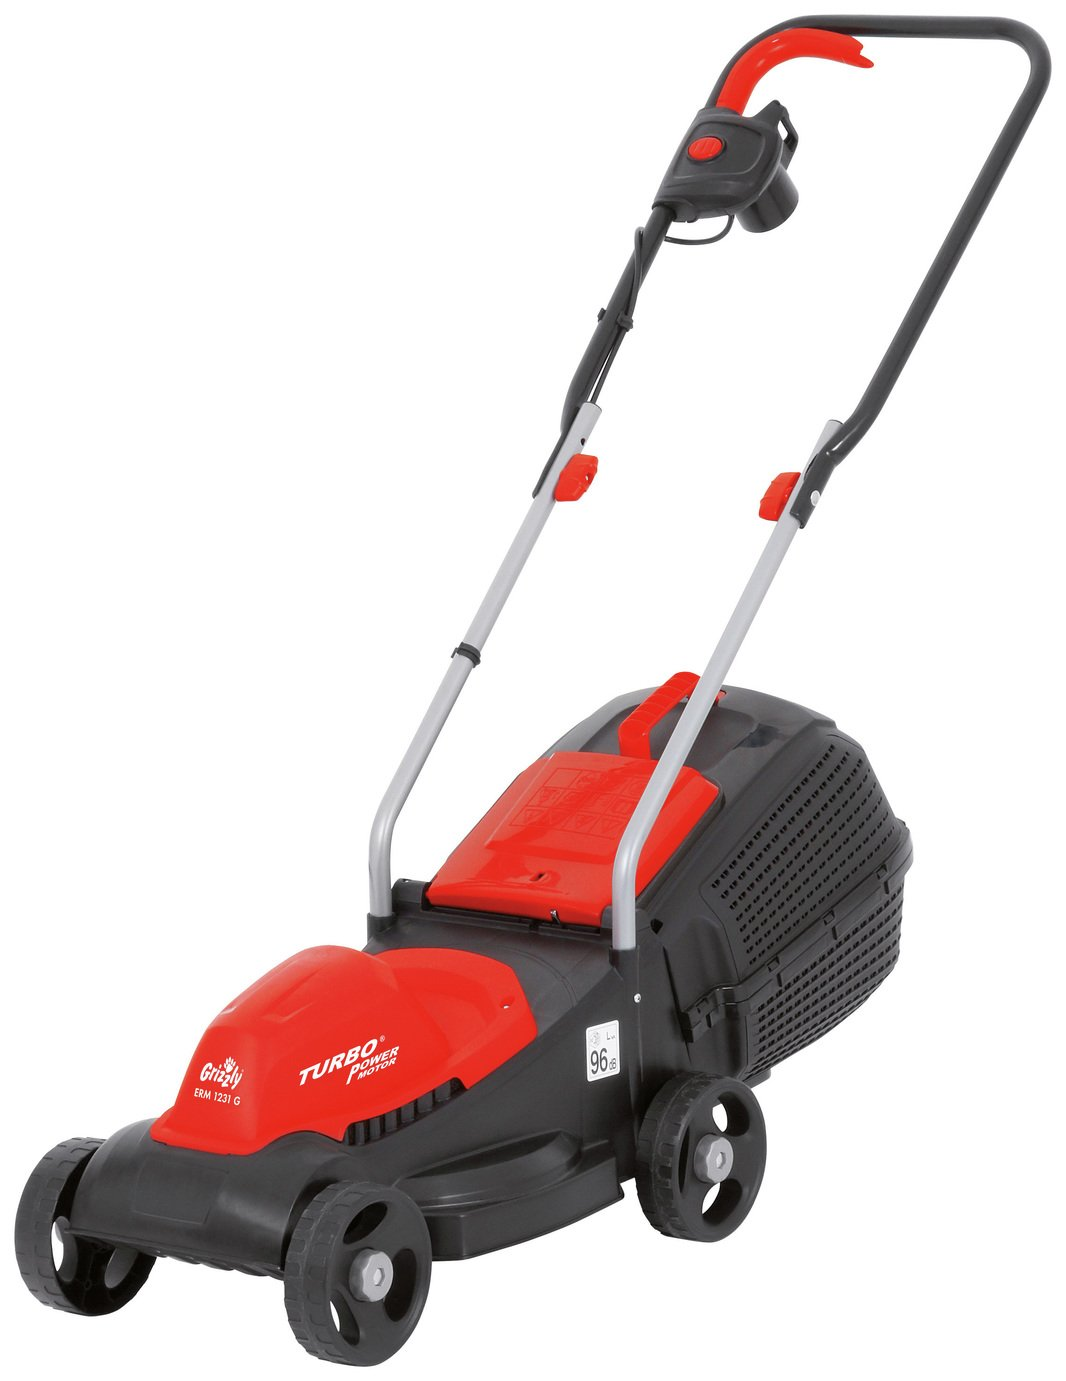 Image of Grizzly Tools 31cm Electric Rotary Lawnmower - 1200W